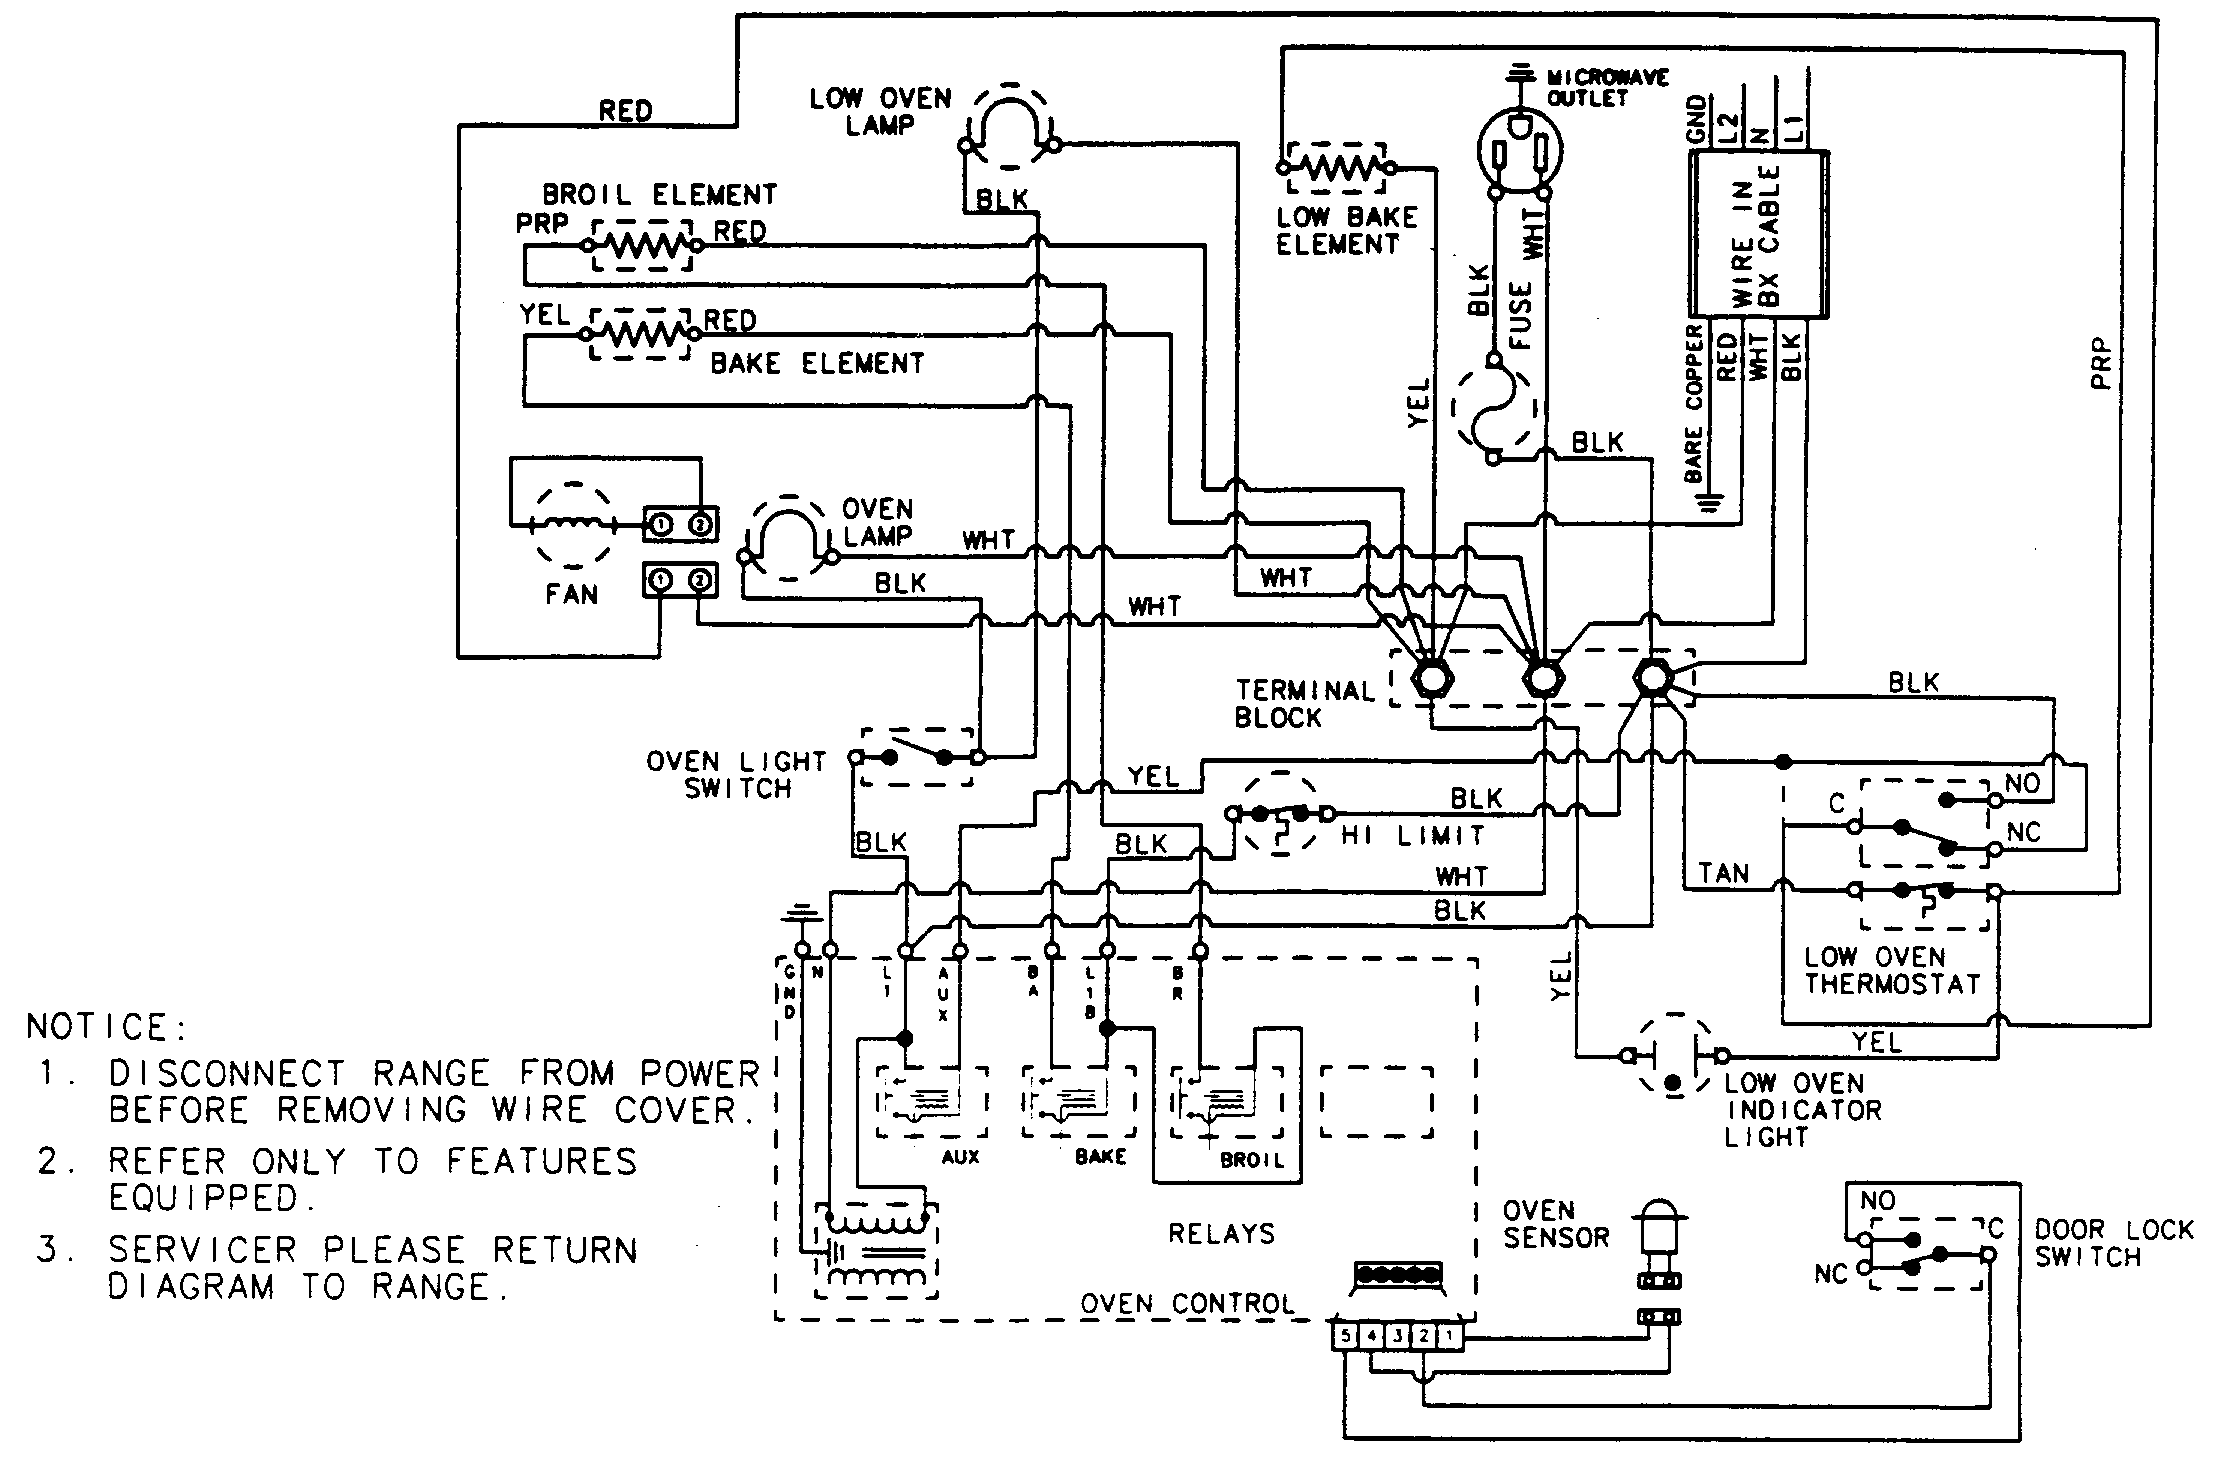 wiring diagram for baumatic oven